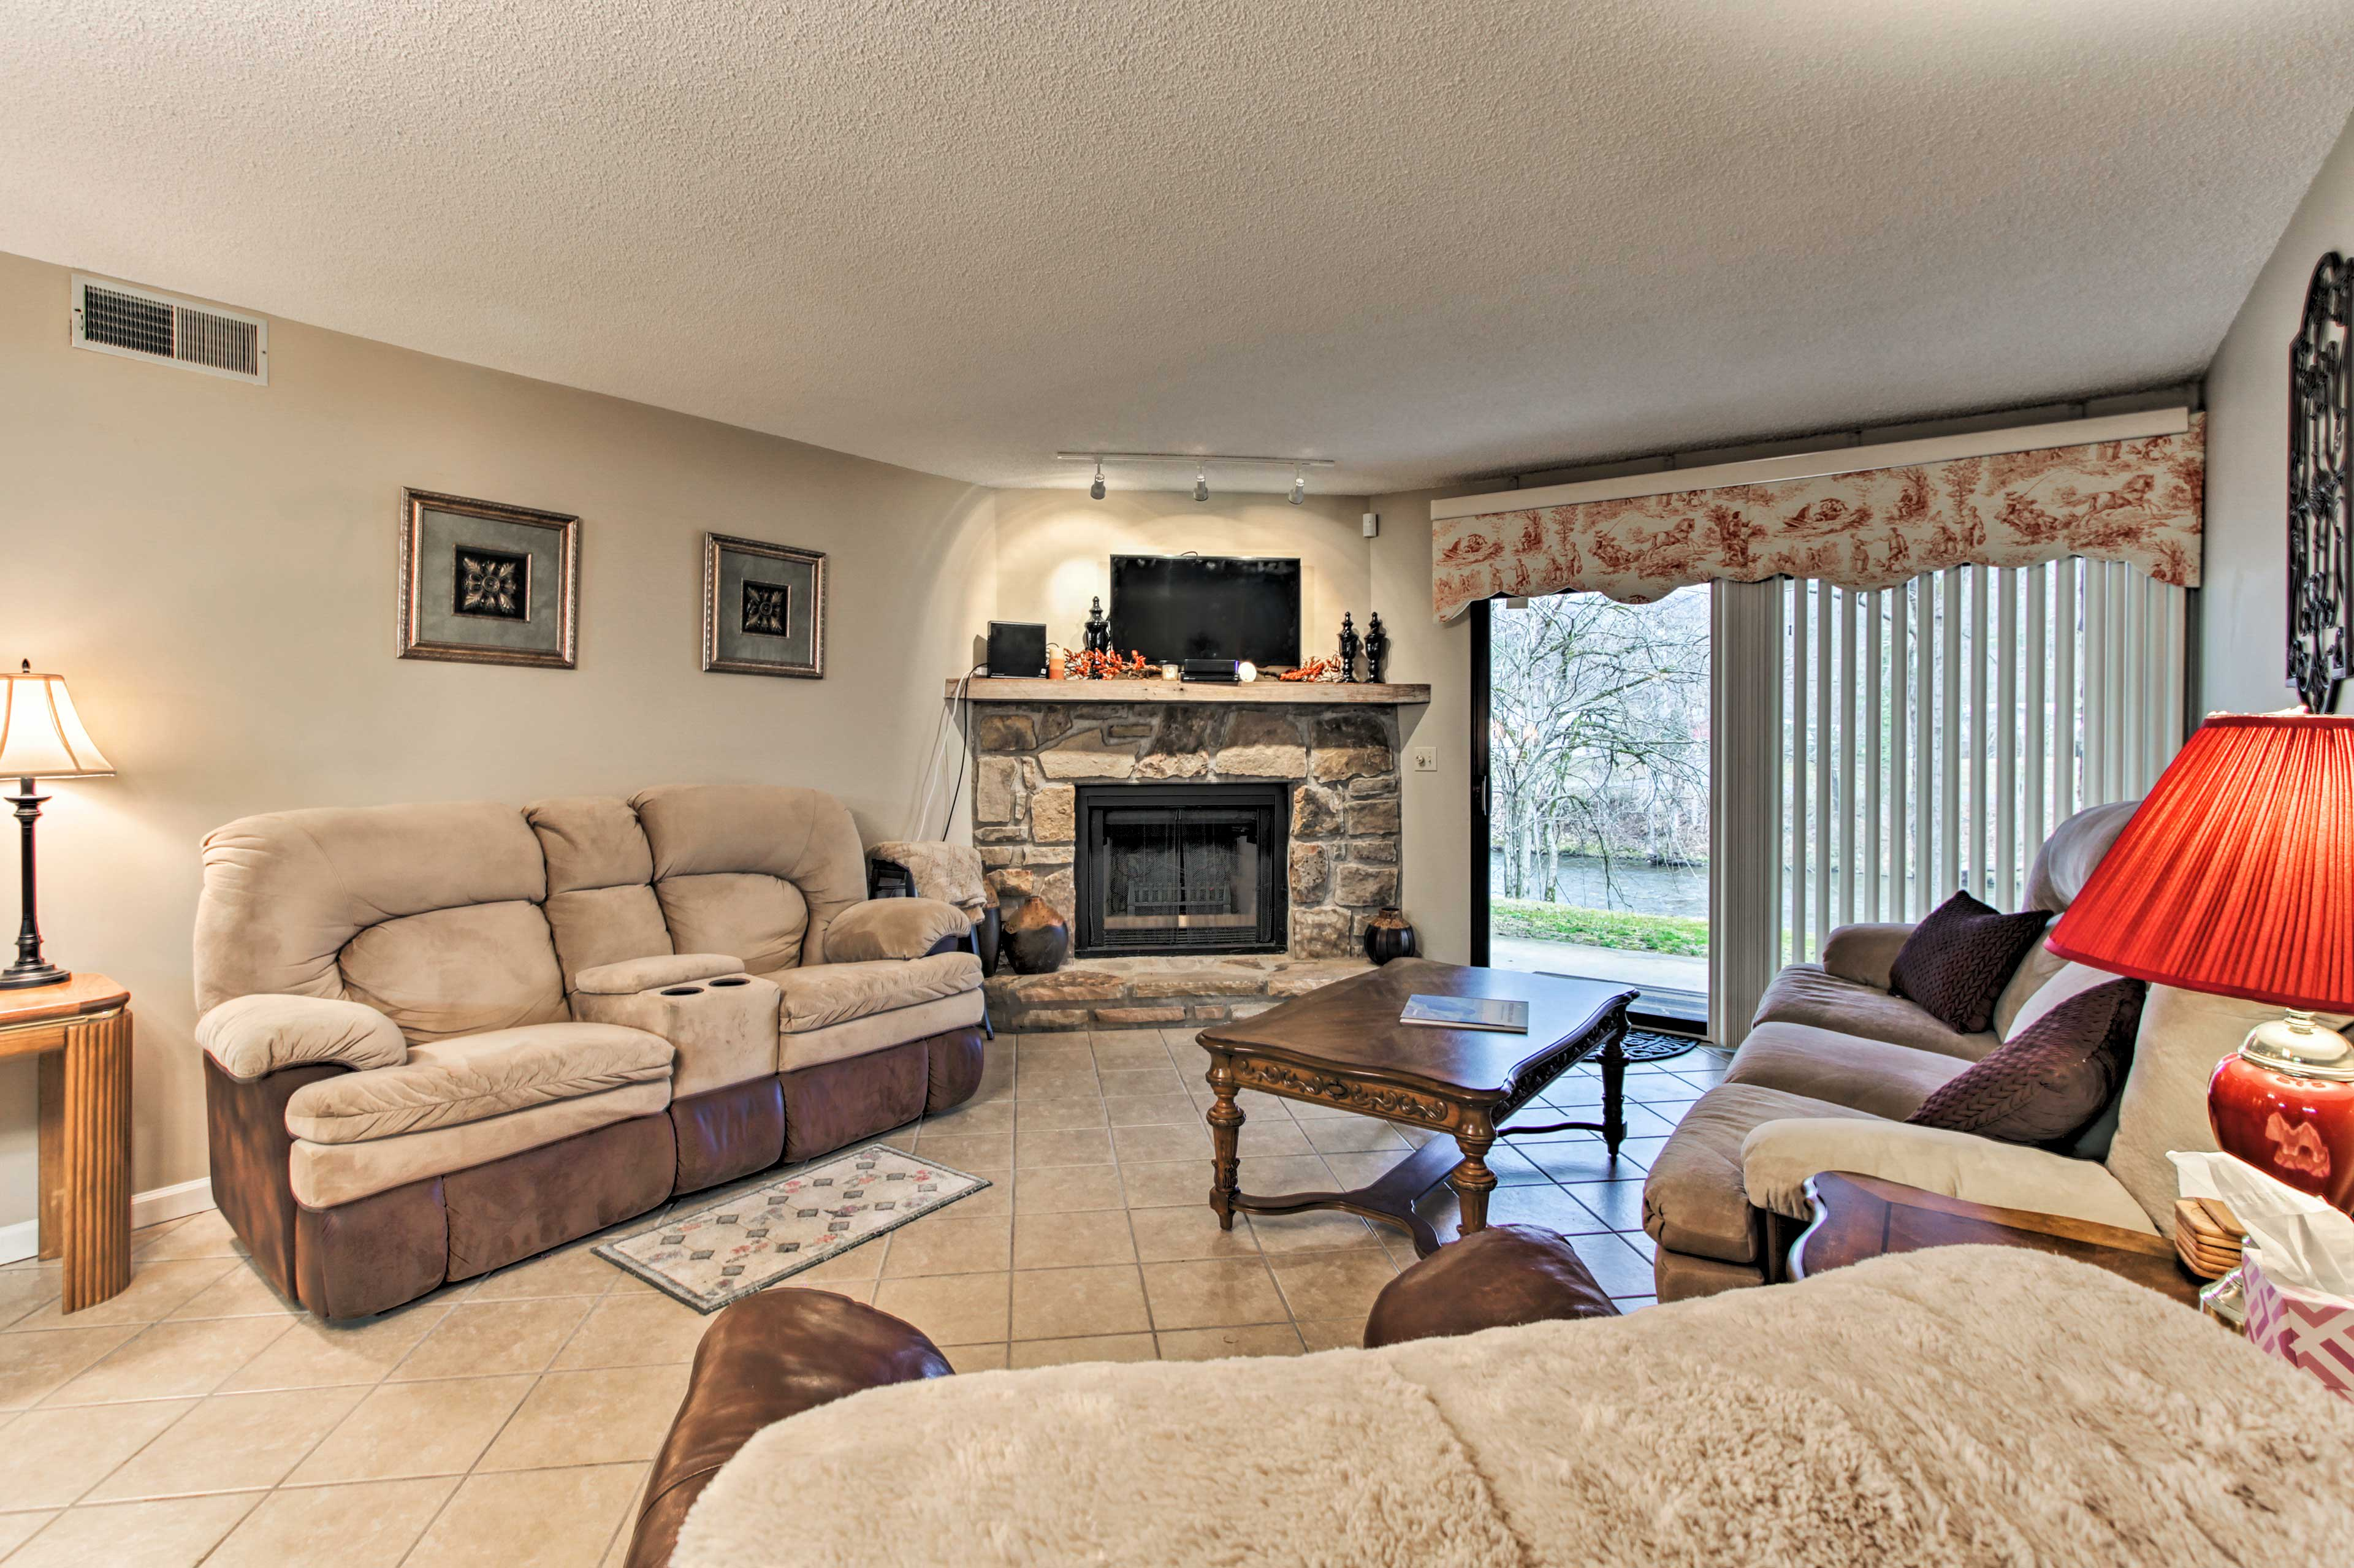 Unwind in on the sofas in the living room after a day of traveling.